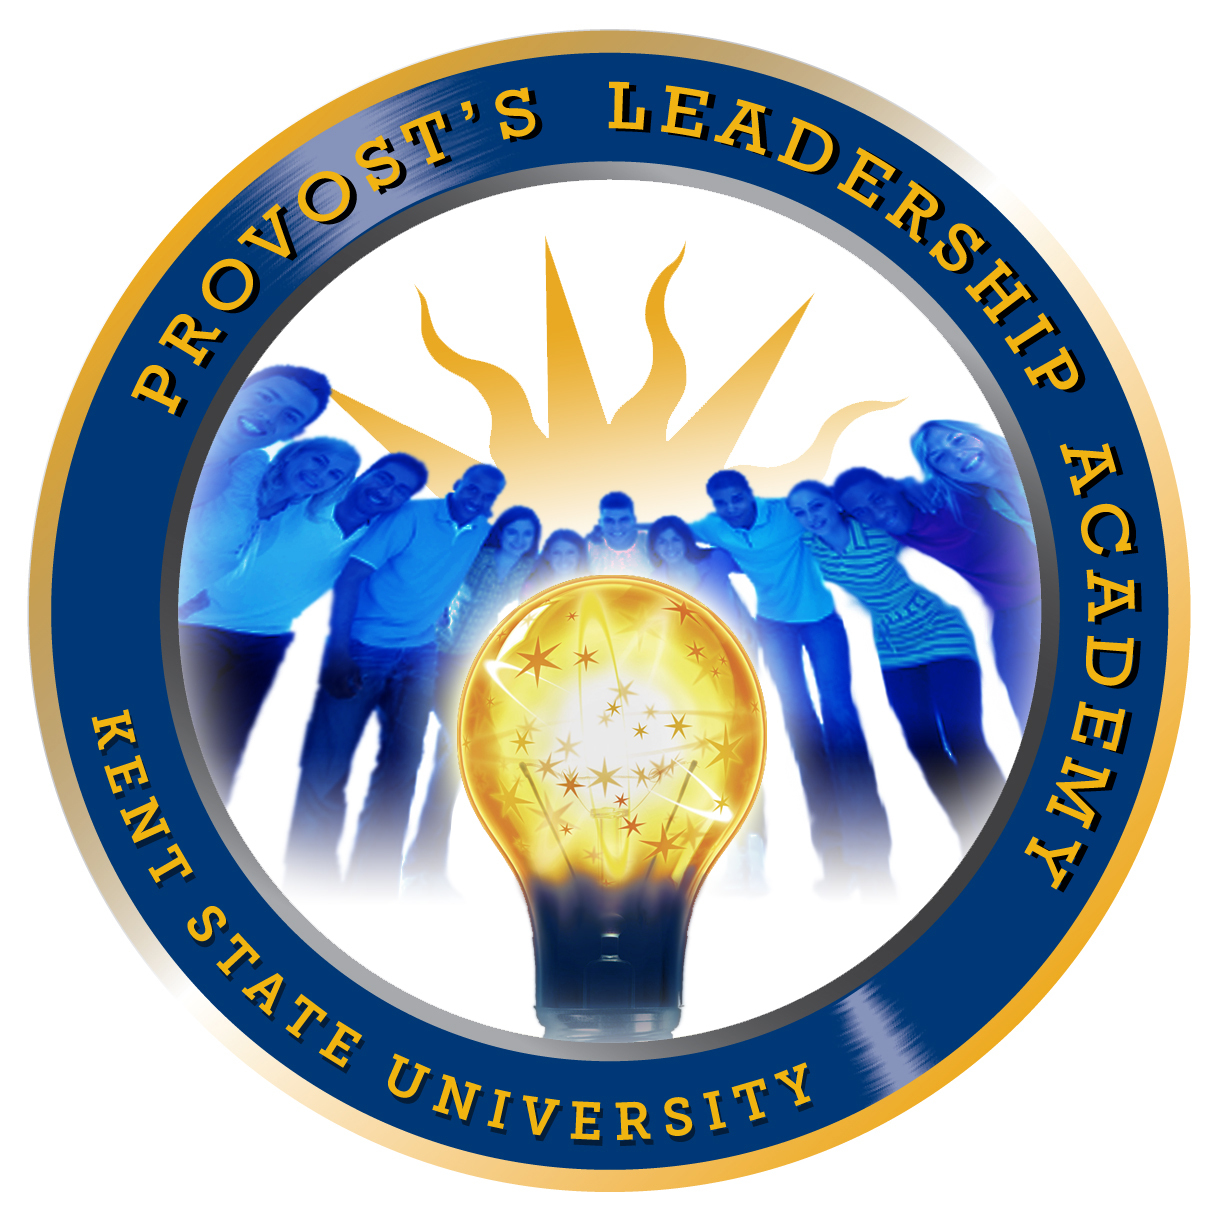 Merit badge provost leadership academy revised final